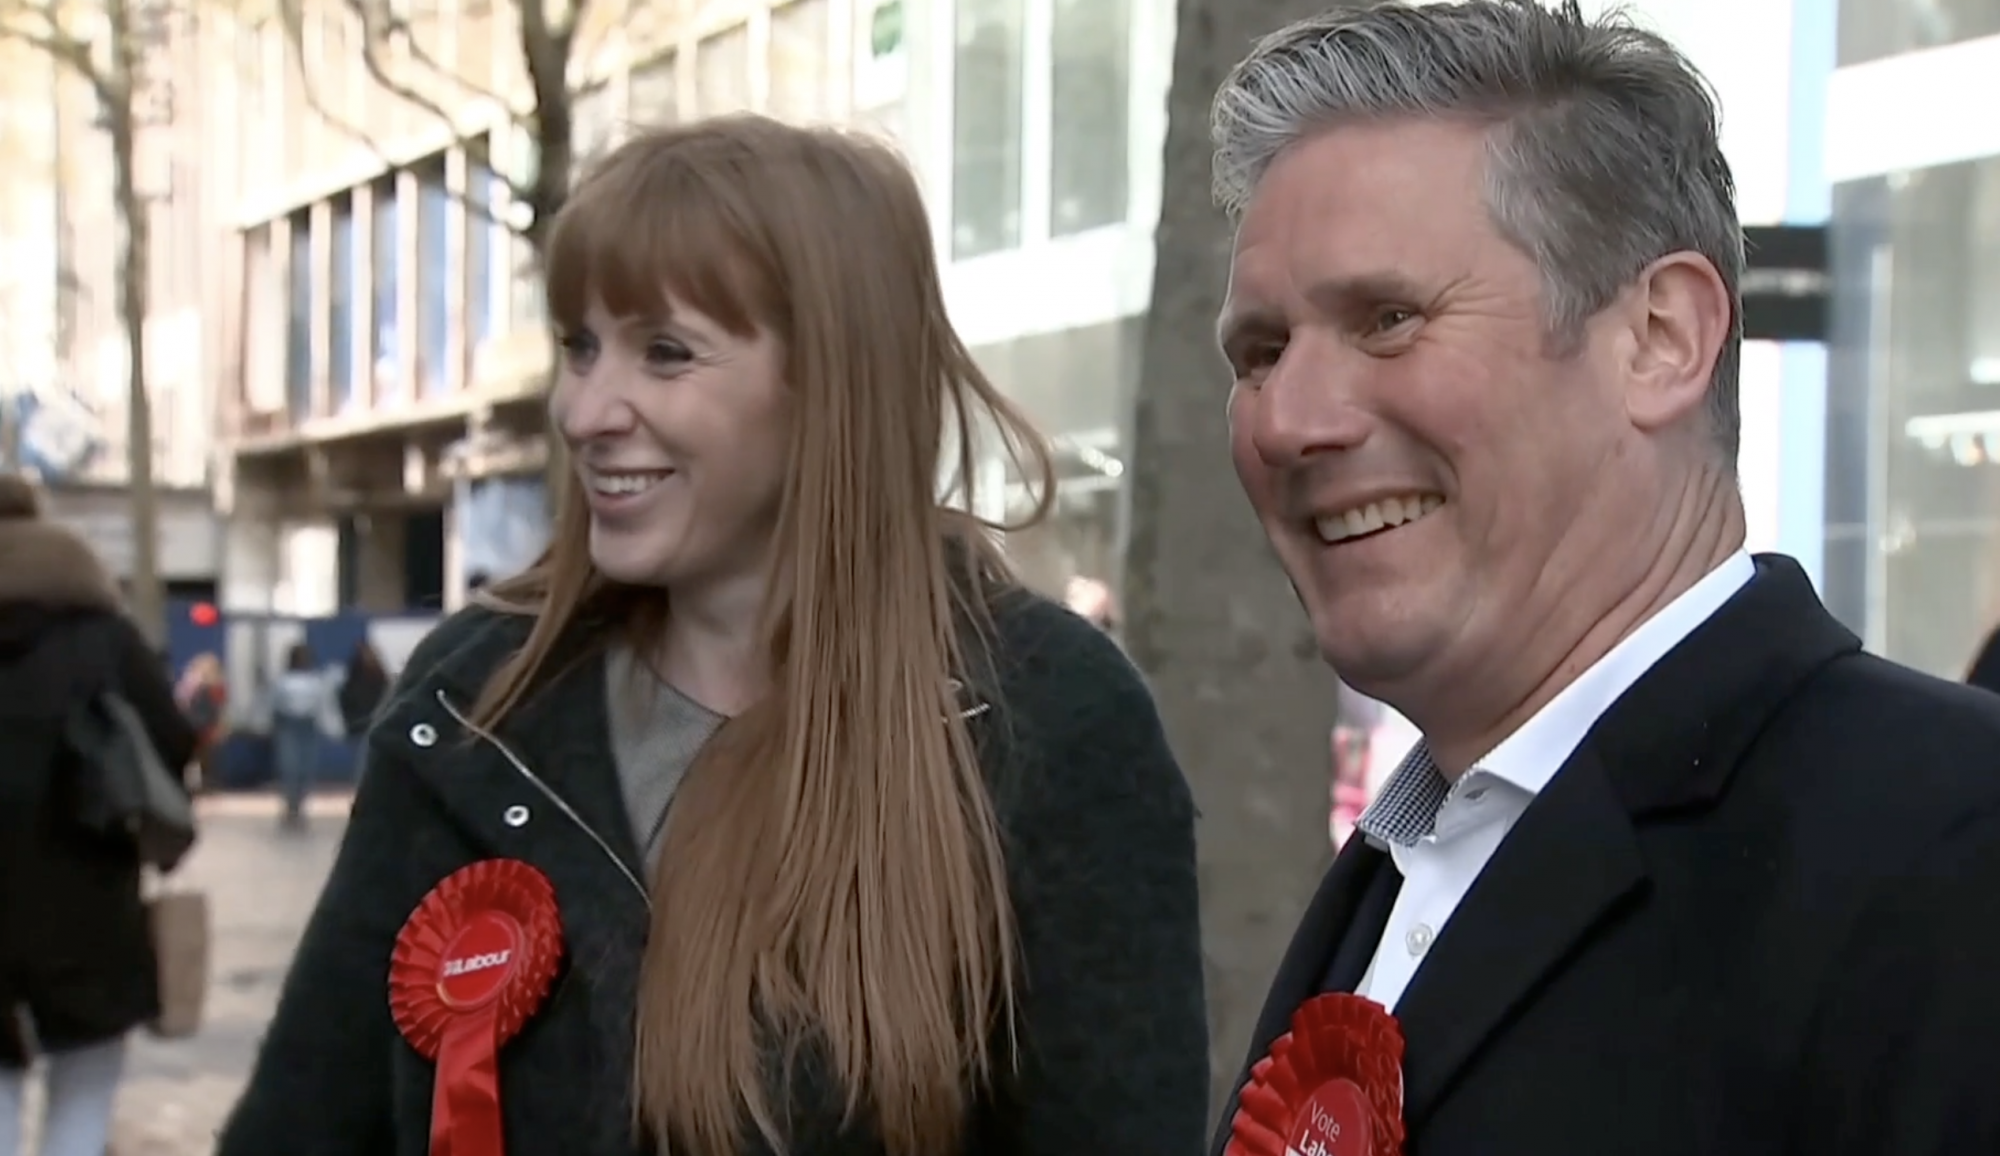 Starmer takes responsibility for election and completes reshuffle – Channel 4 NewsChannel 4 NewsShare on FacebookShare on TwitterShare on WhatsAppShare on WhatsAppShare on WhatsAppLoad more share options